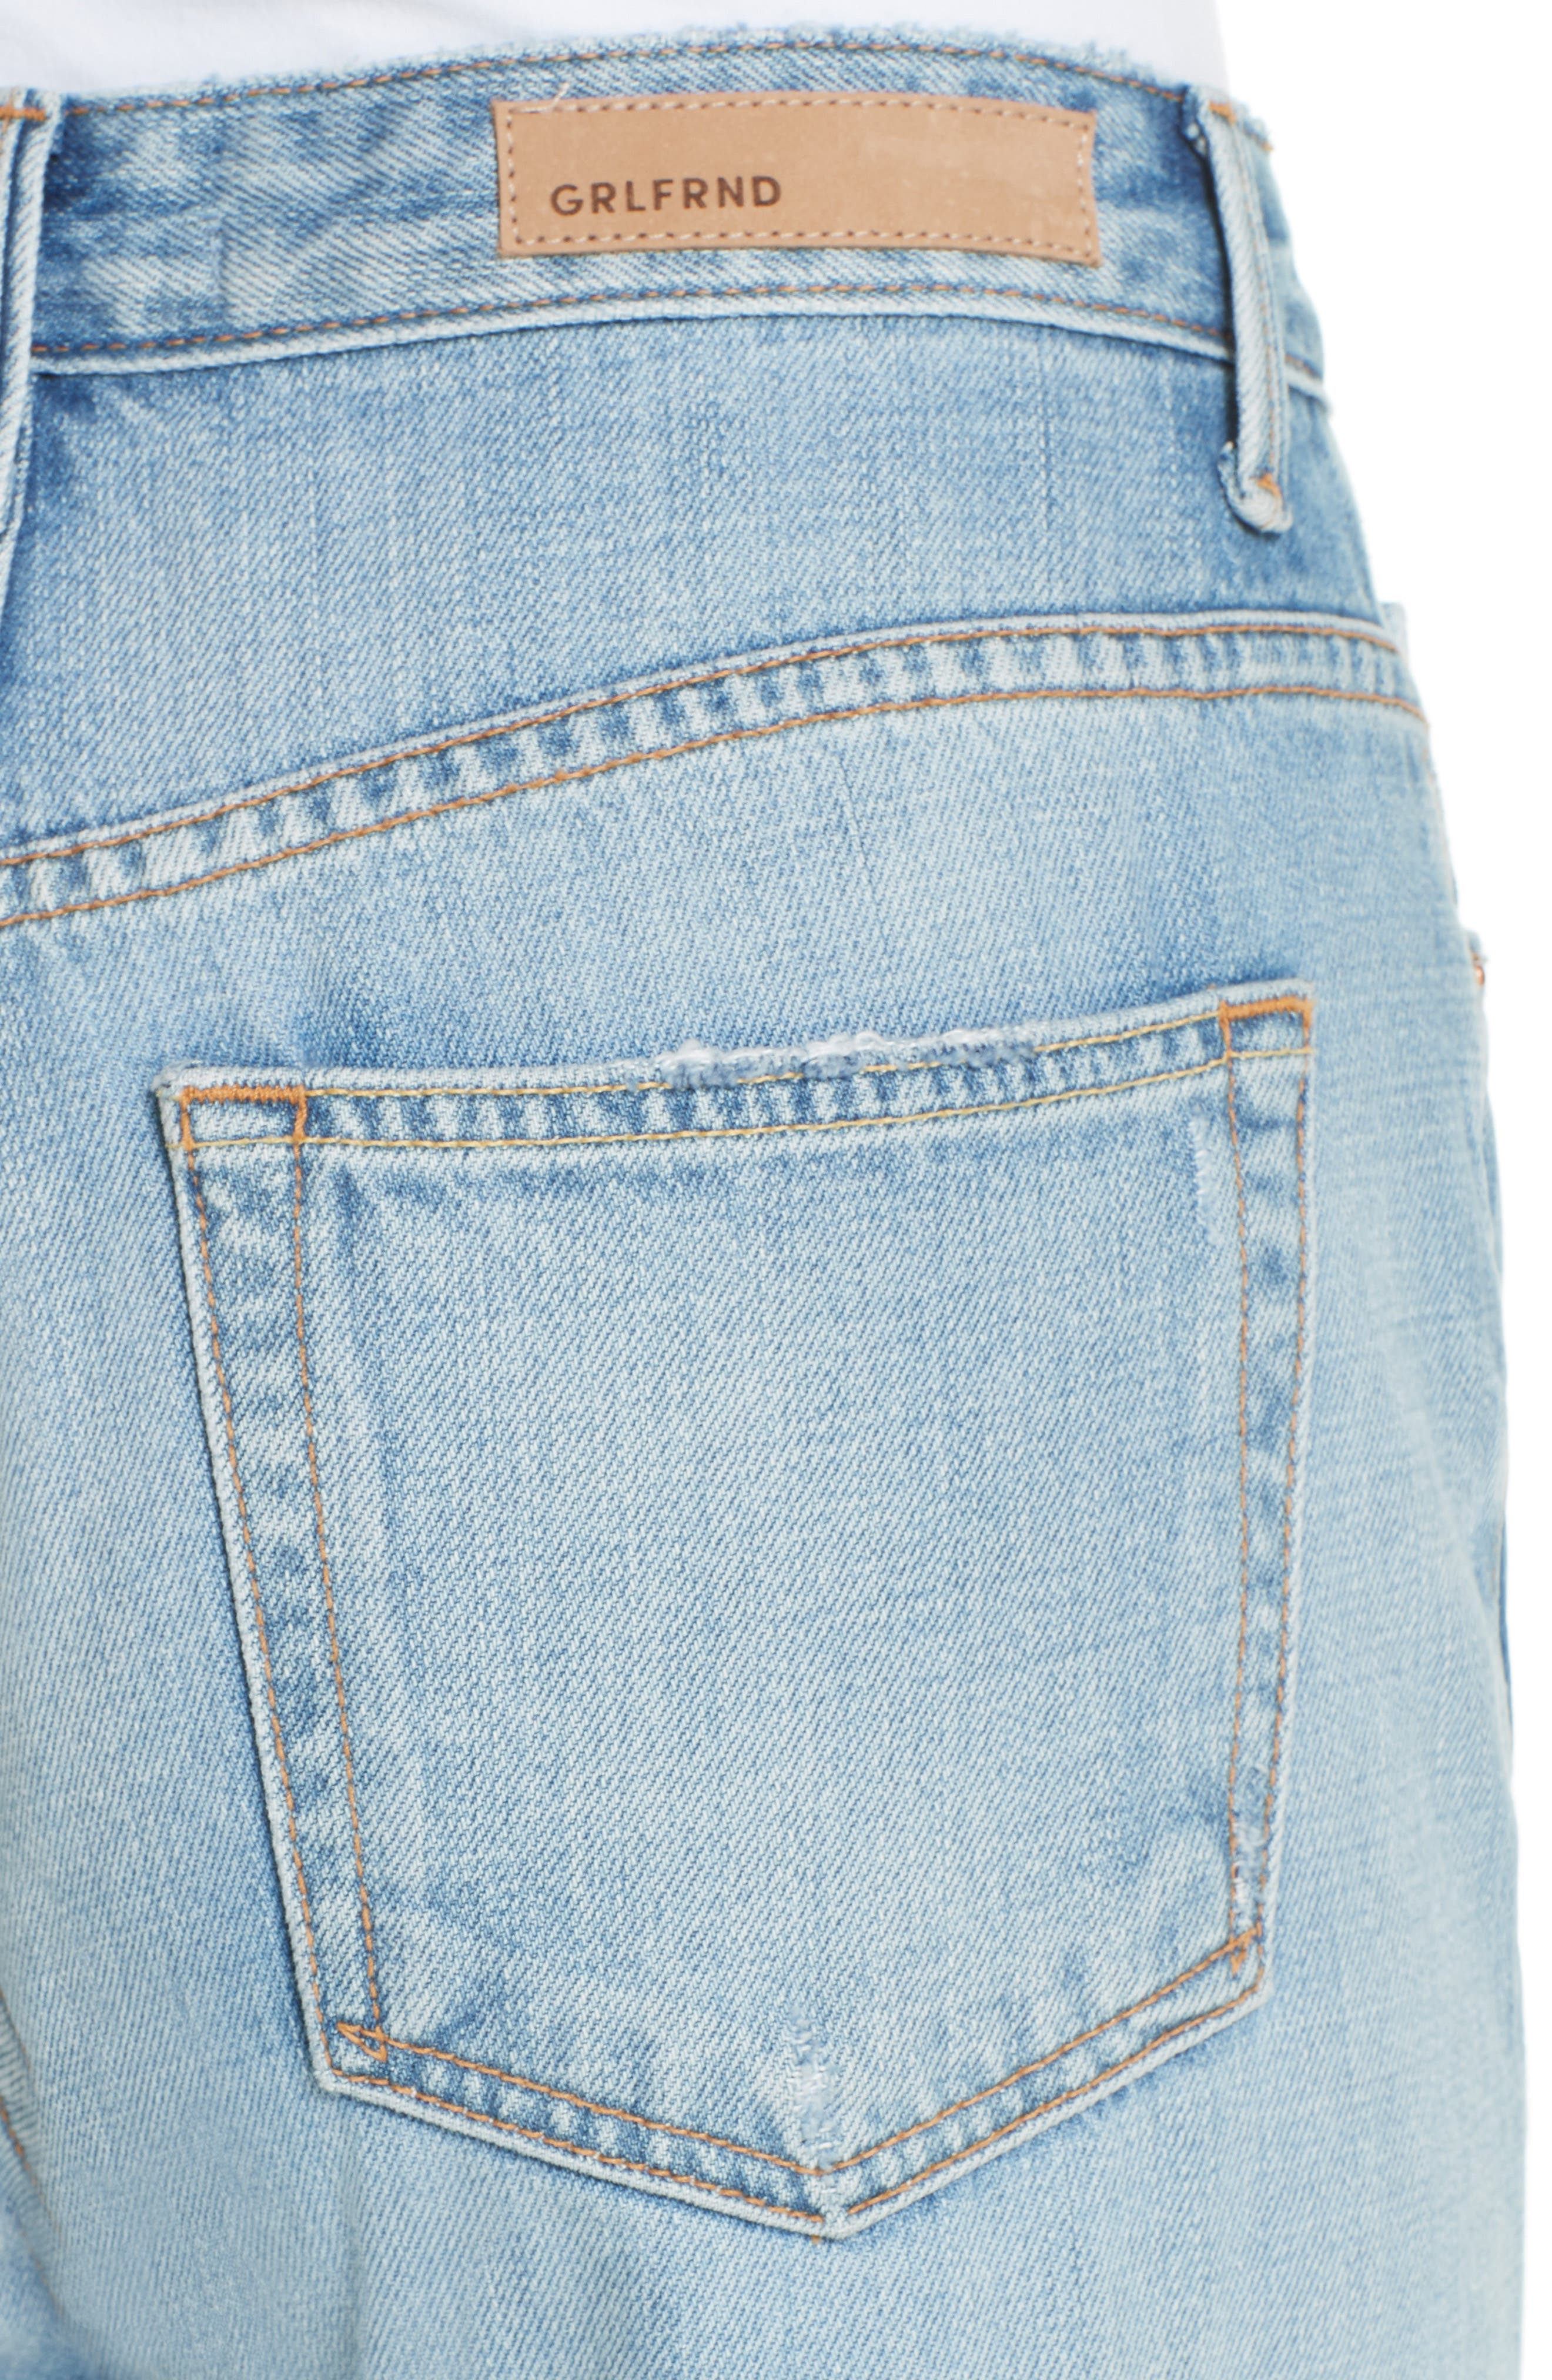 Carla Wide Leg Jeans,                             Alternate thumbnail 4, color,                             GONNA FLY NOW